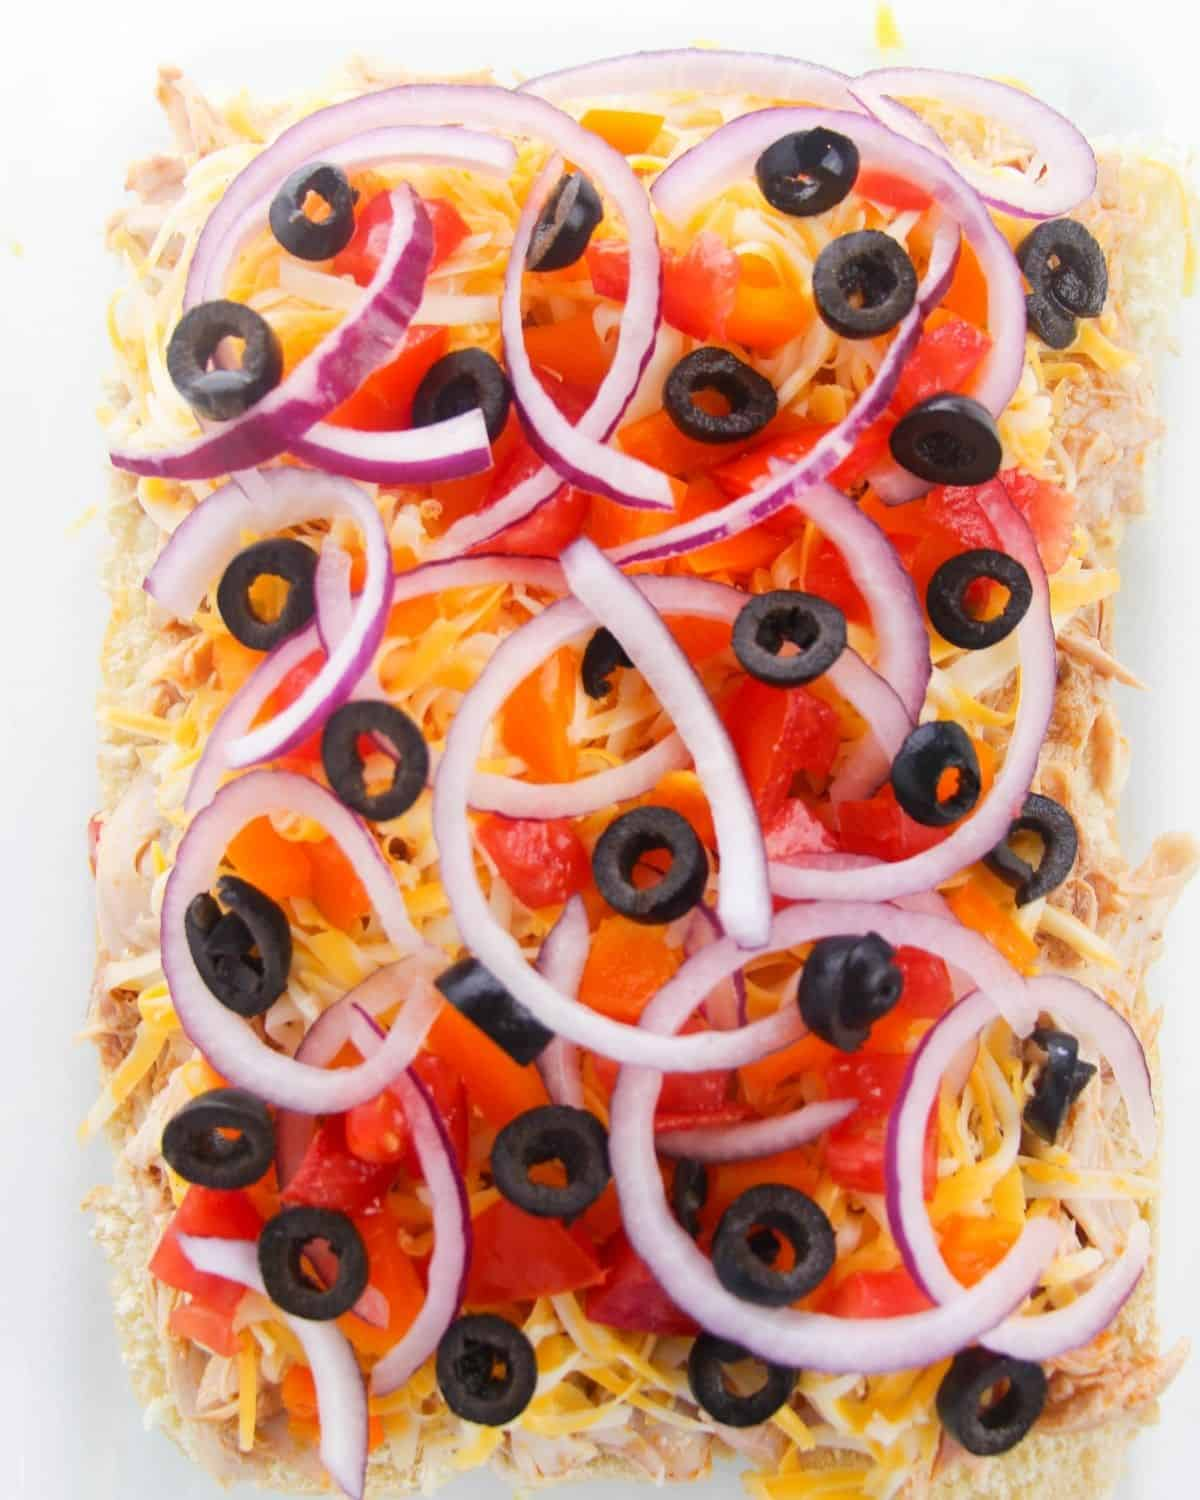 Layers of shredded cheese, red onions and diced olives